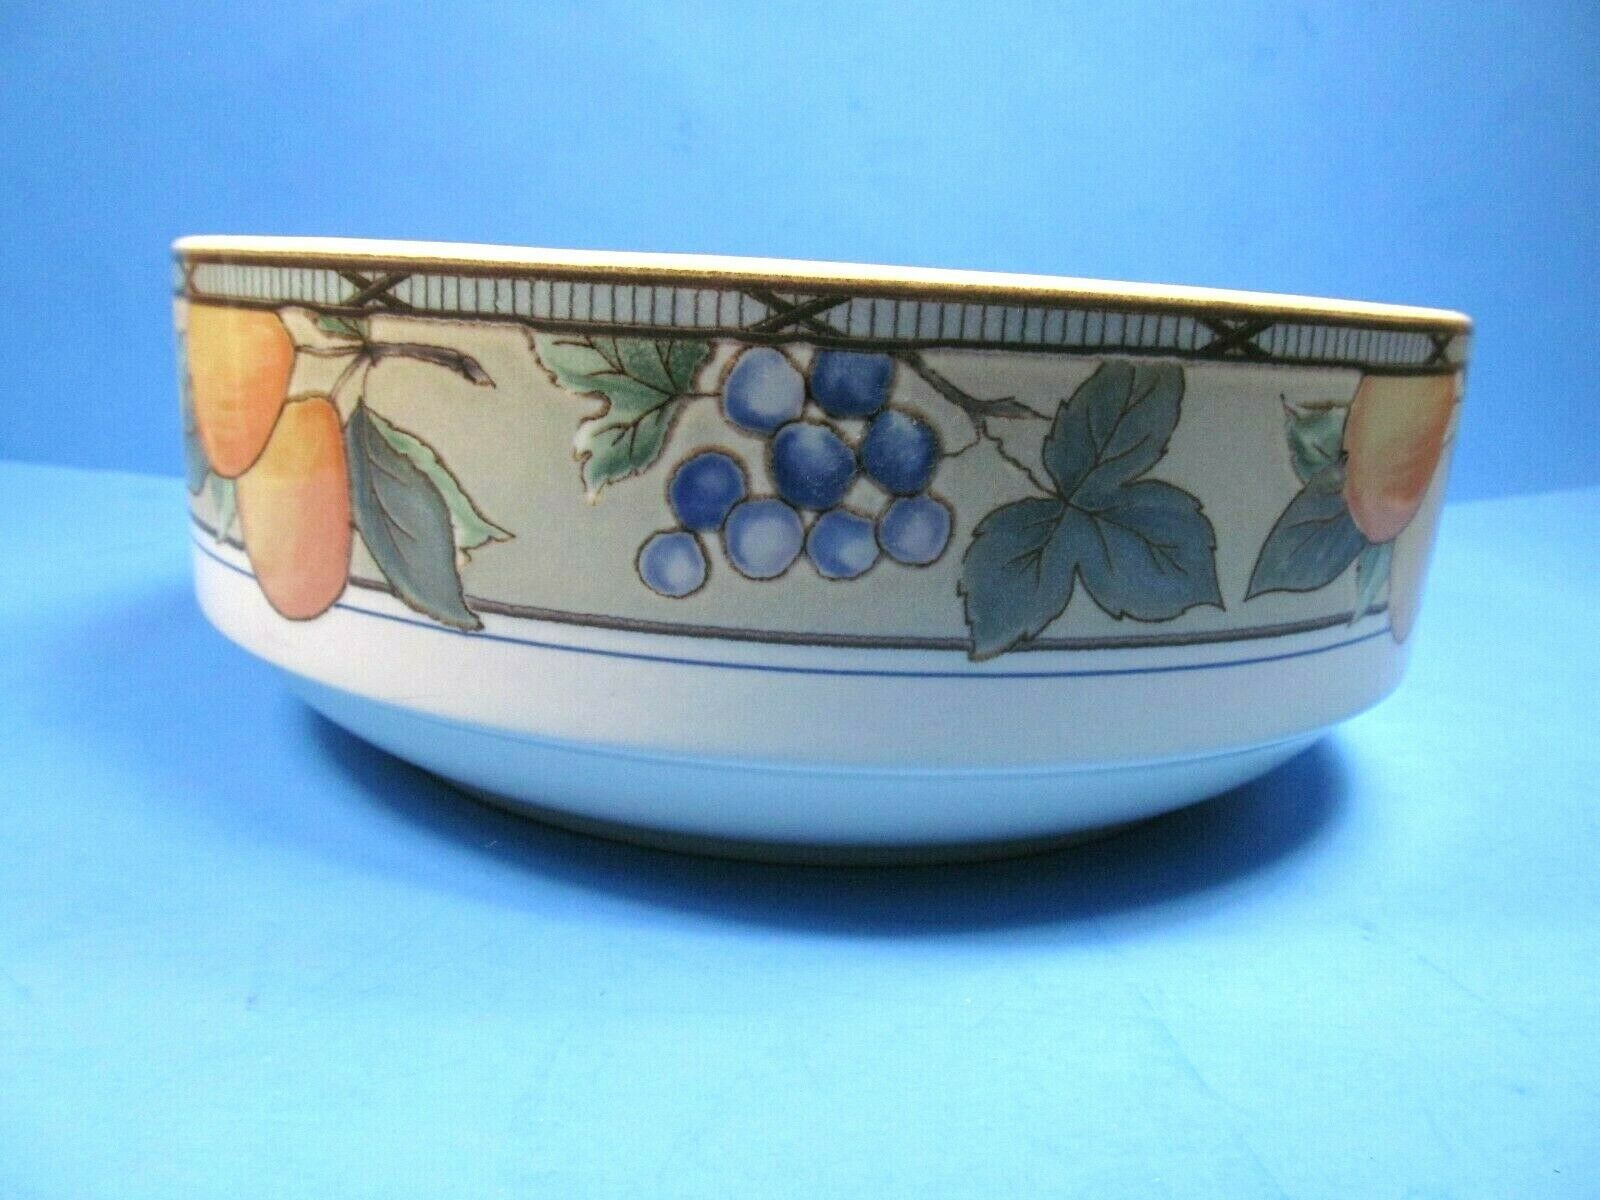 Primary image for Mikasa Intaglio CAC29 Garden Harvest 9 3/8 Vegetable Bowl